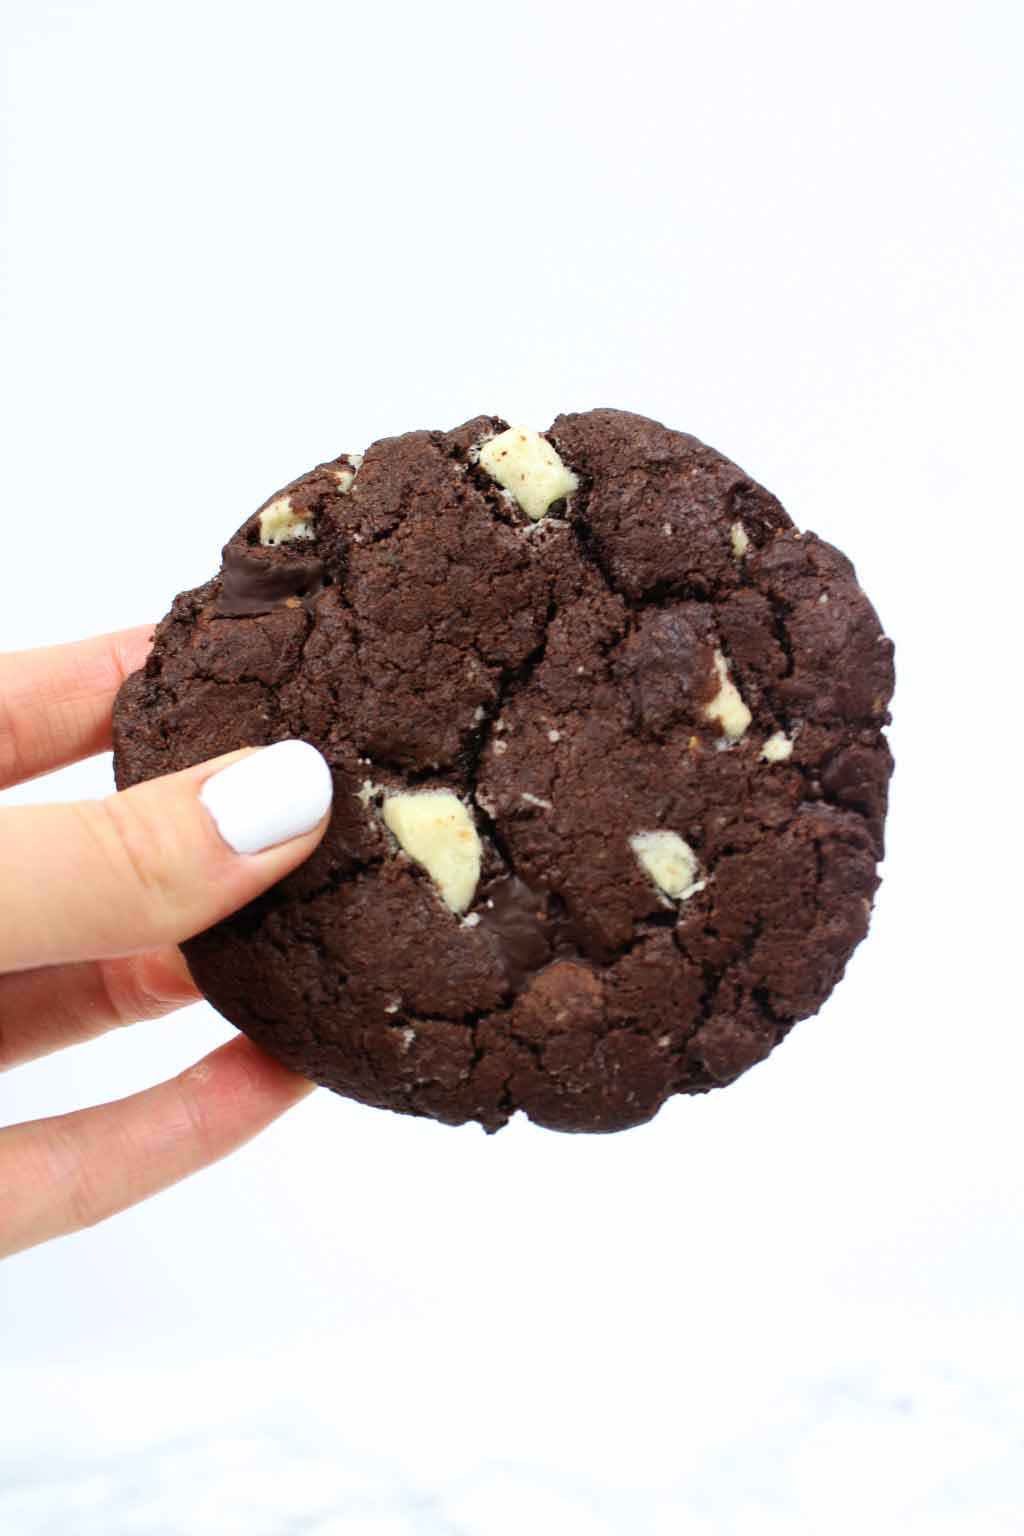 a hand holding a cookie